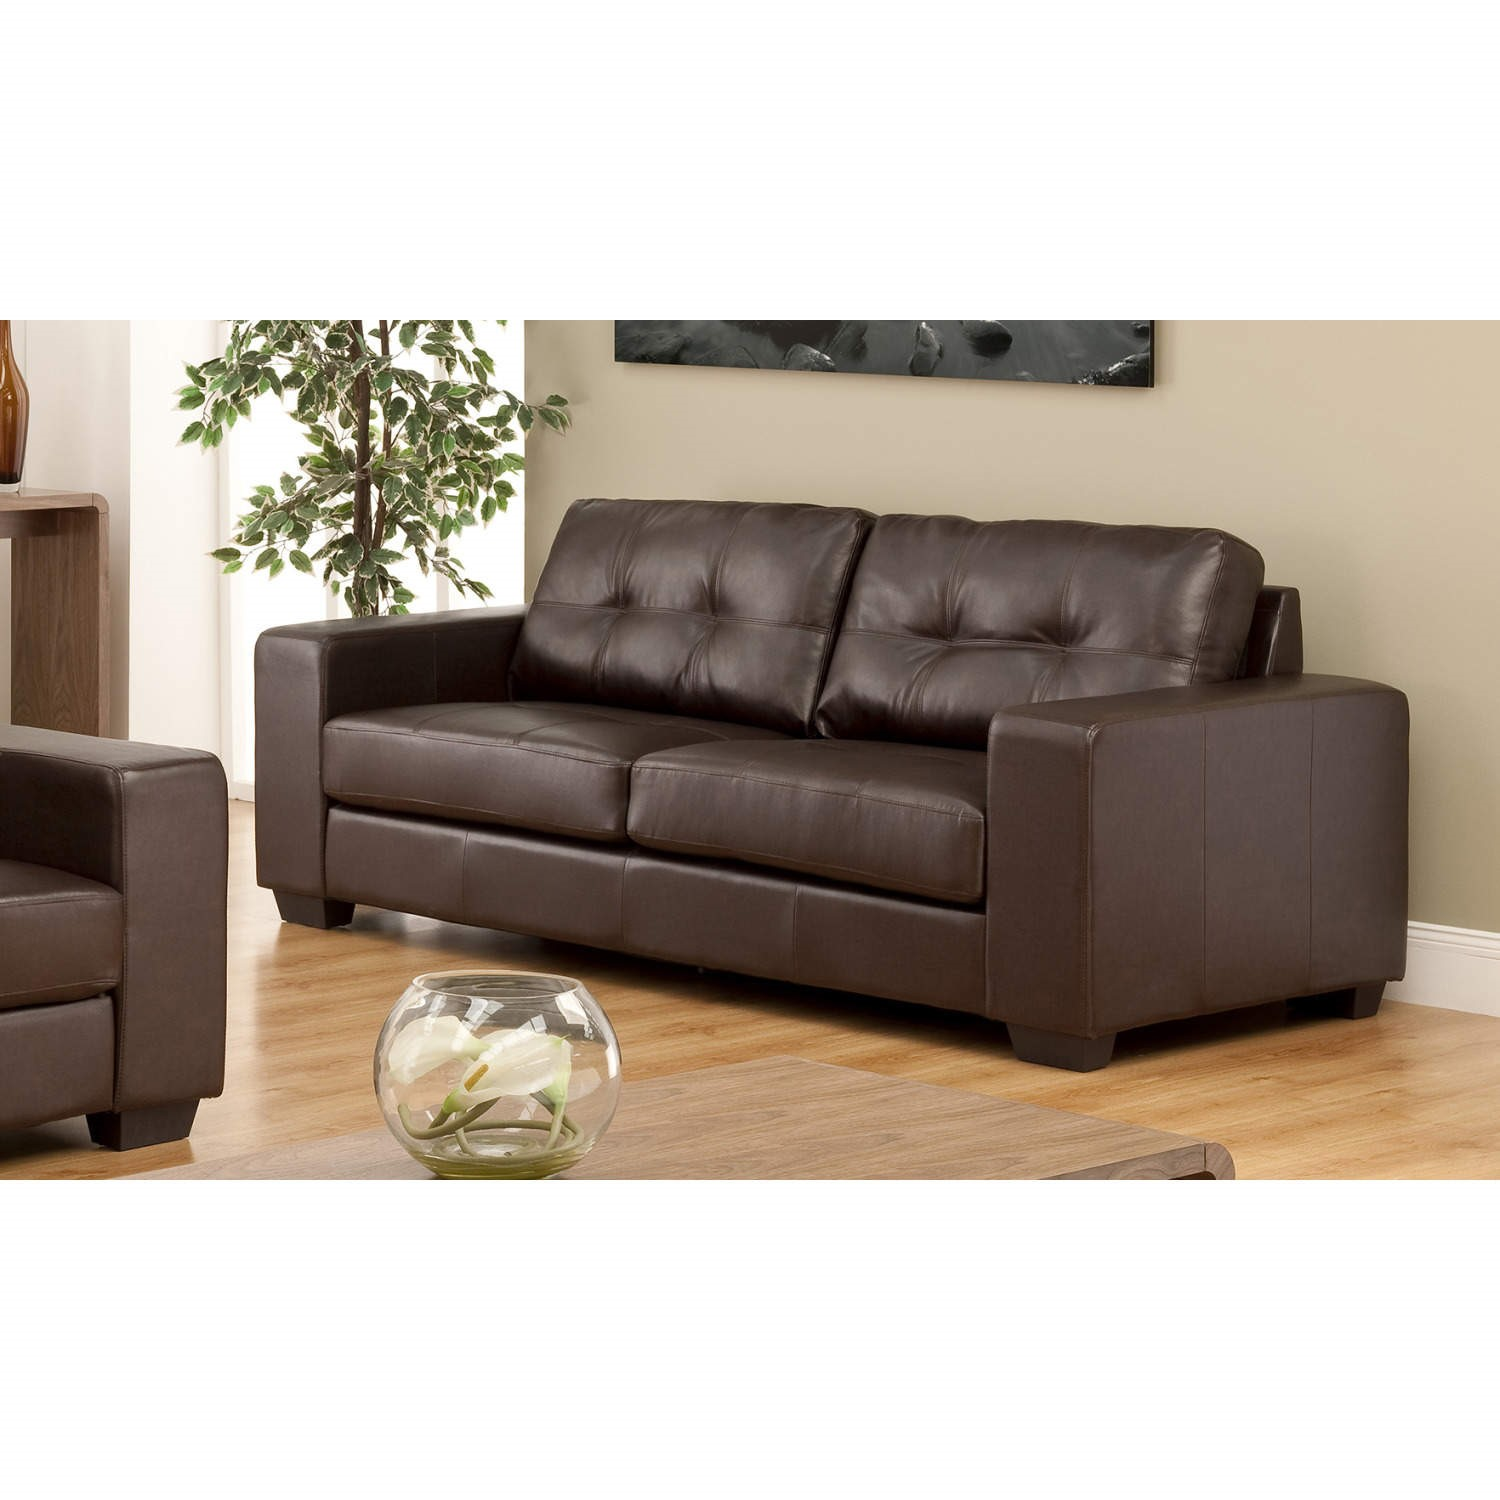 Phenomenal World Furniture Durban Bonded Leather 3 Seater Sofa In Brown Beatyapartments Chair Design Images Beatyapartmentscom